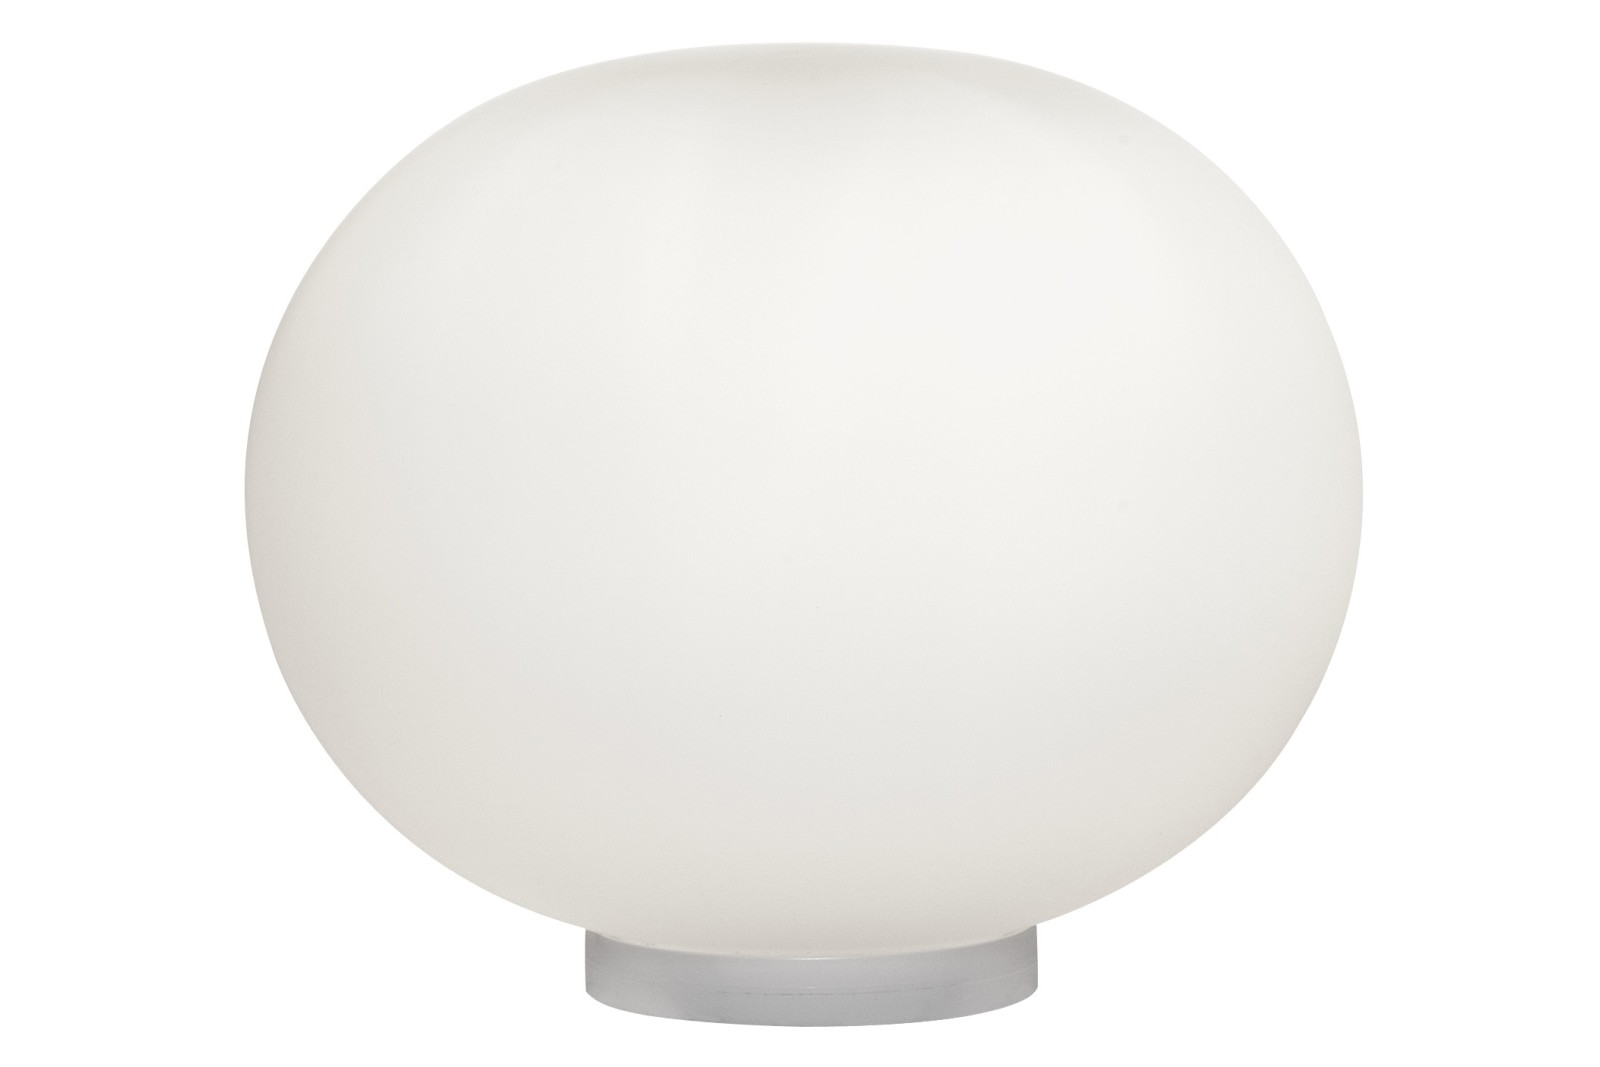 Glo-Ball Basic Zero Table Lamp Dimmer Switch